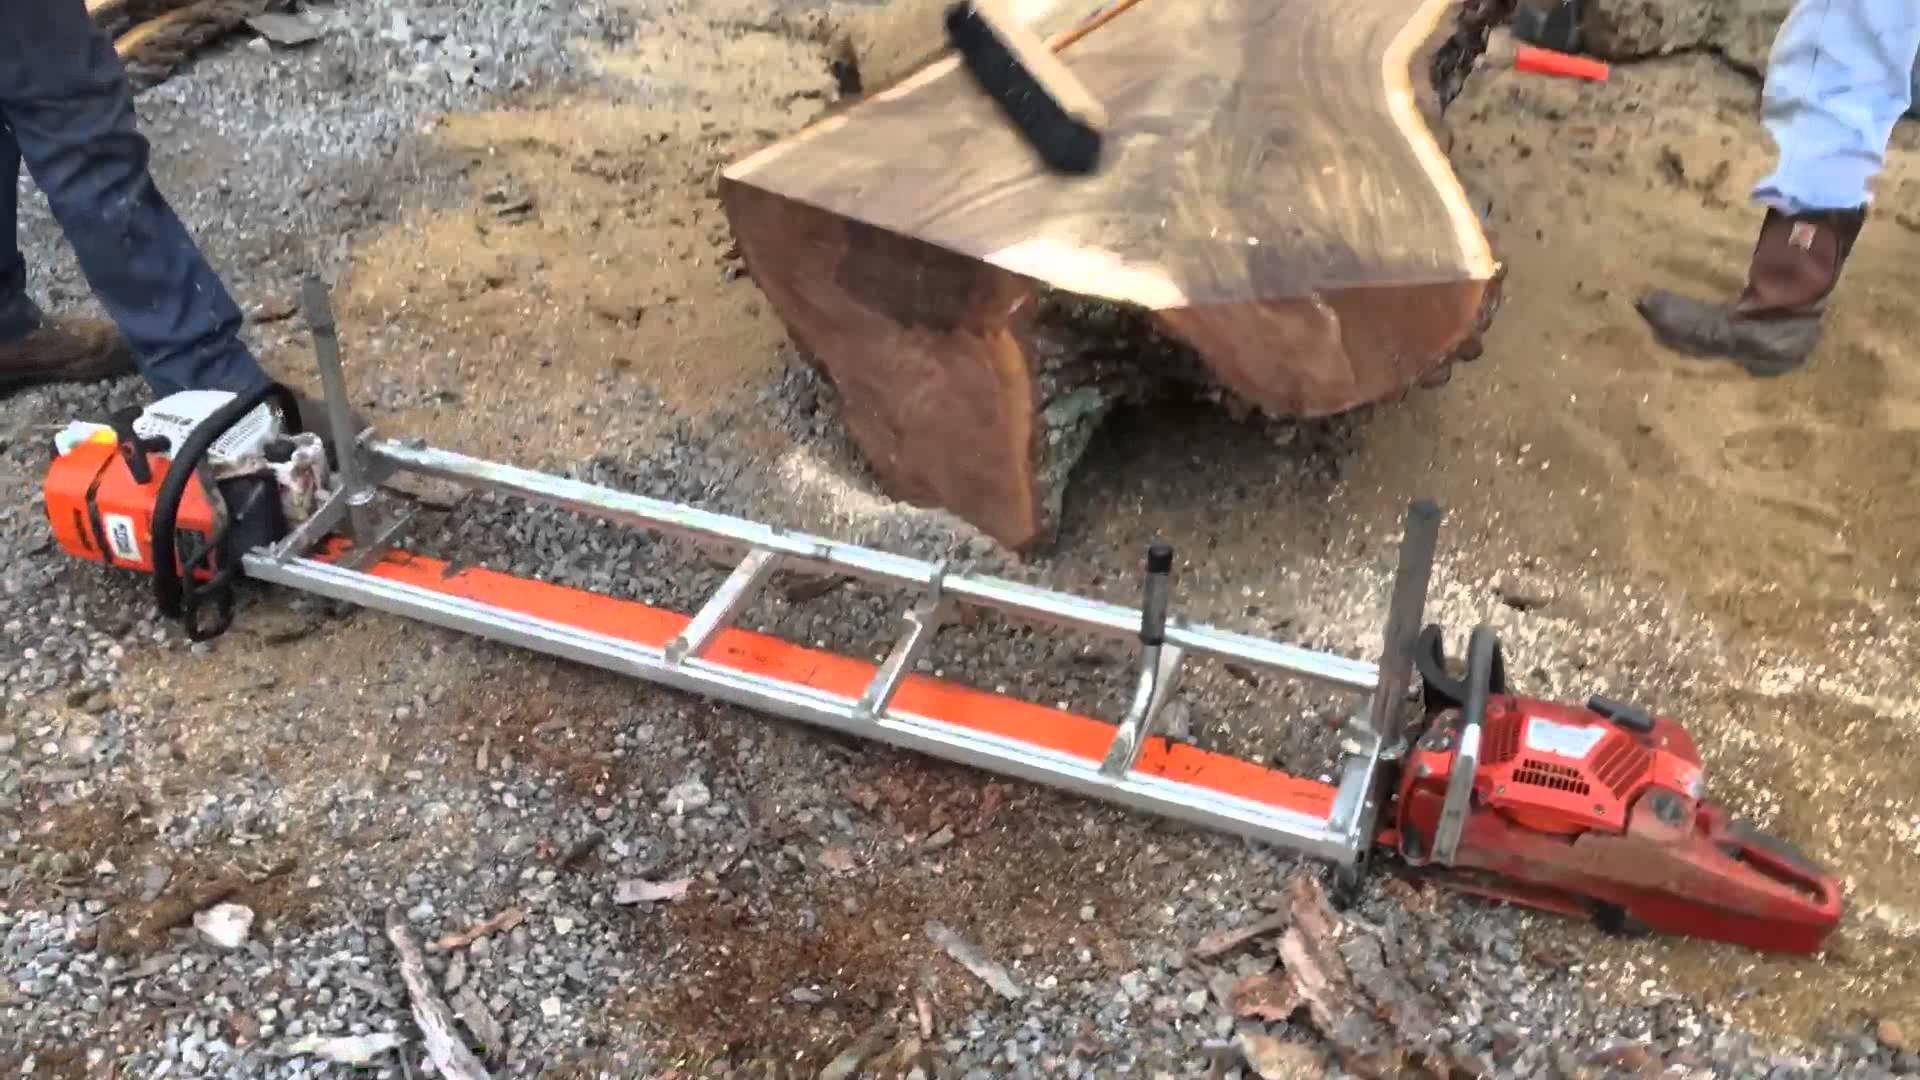 For milling extremely large logs, an Alaskan saw mill with dual chainsaws may be the only option.